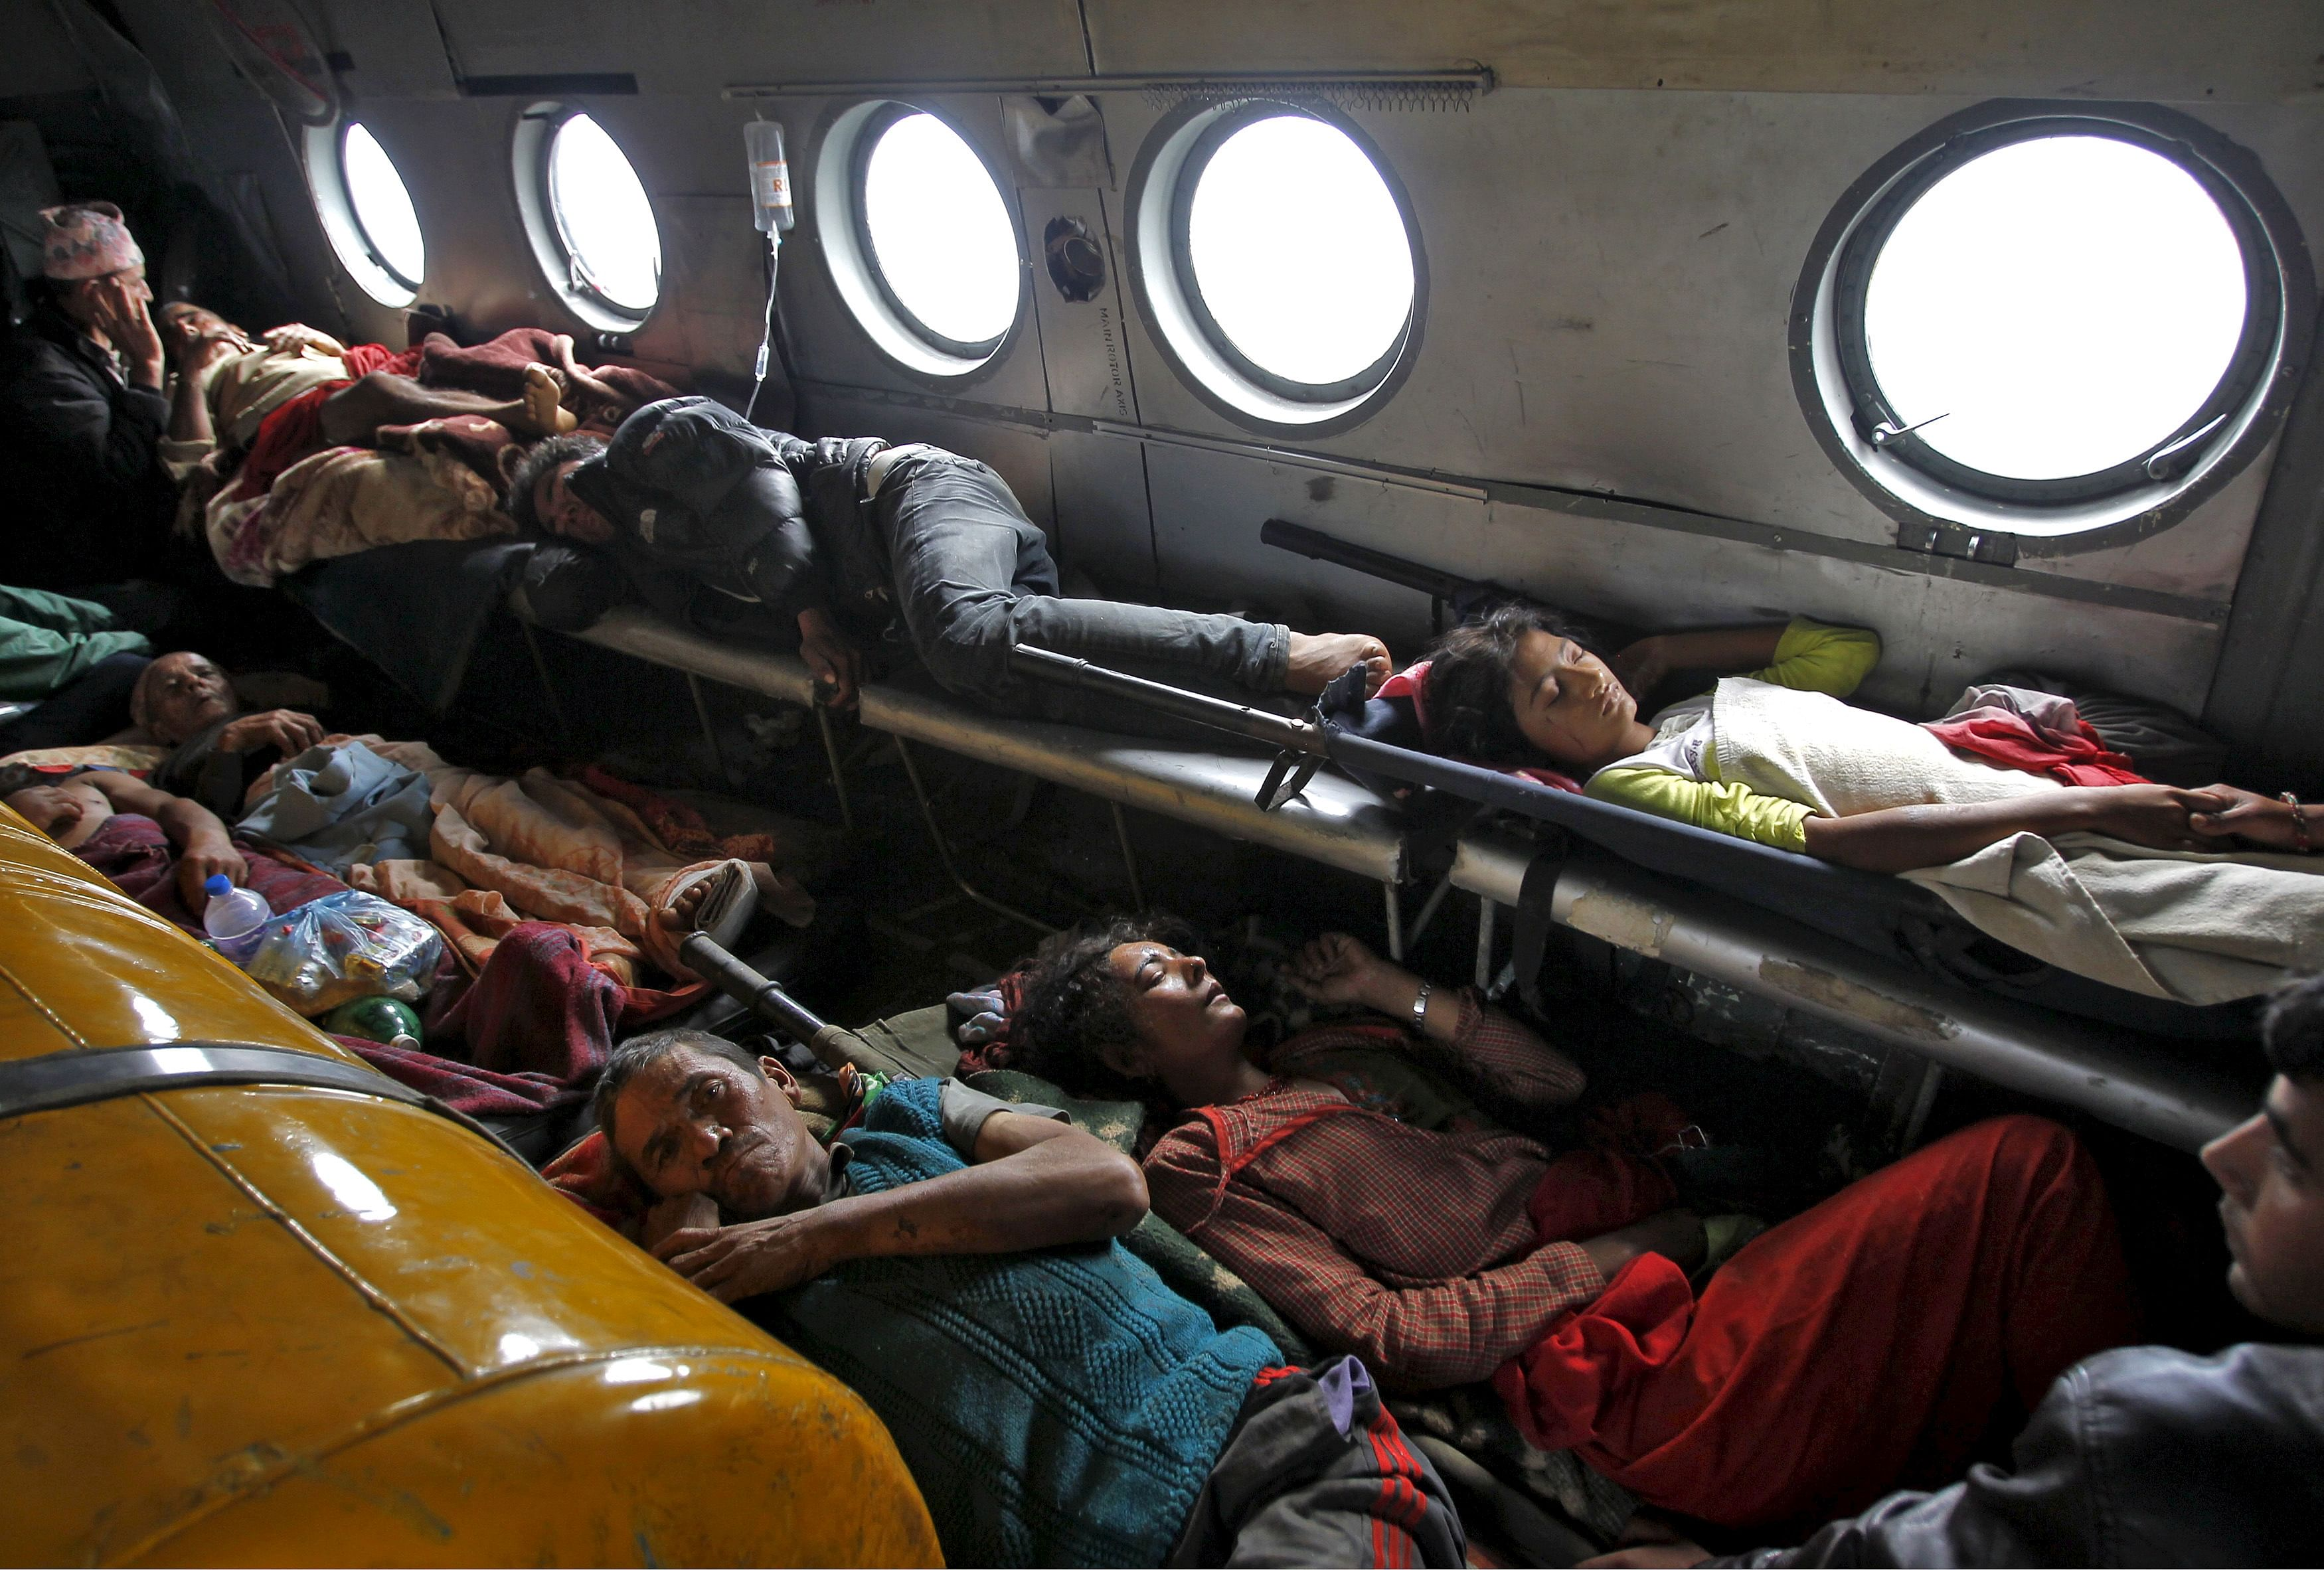 Victims of Saturday's earthquake lie inside an Indian Air Force helicopter as they are evacuated from Trishuli Bazar to the airport in Kathmandu, Nepal, April 27, 2015. REUTERS/Jitendra Prakash   - RTX1AH8L